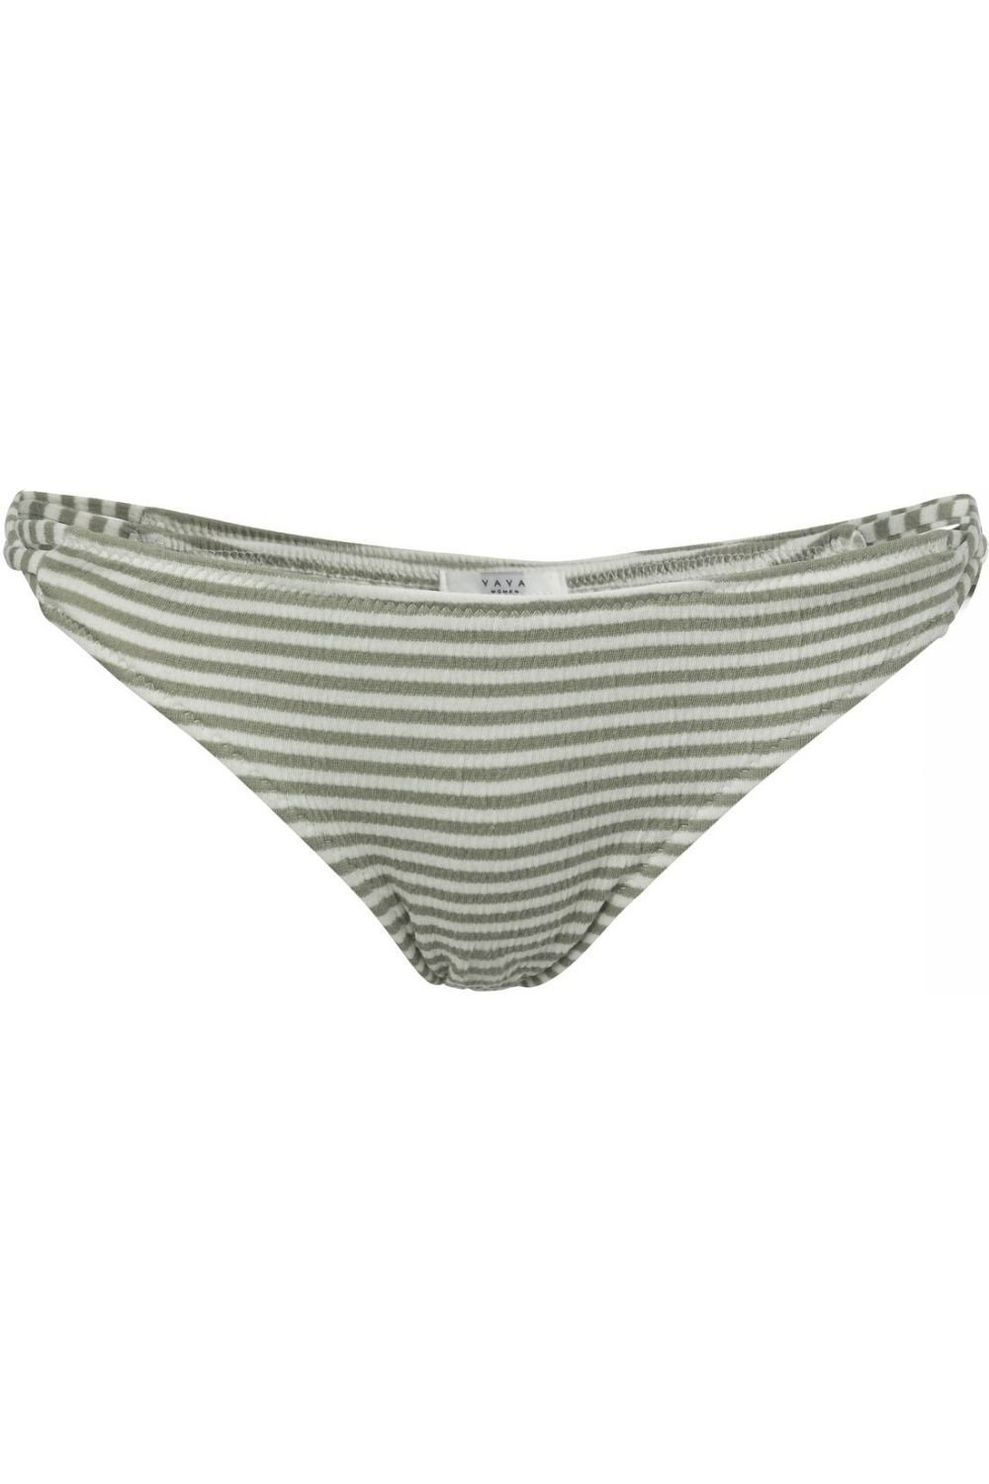 YAYA Slip Strappy Striped voor dames - Wit/MiddenGroen - Maten: XS, S, L, XL